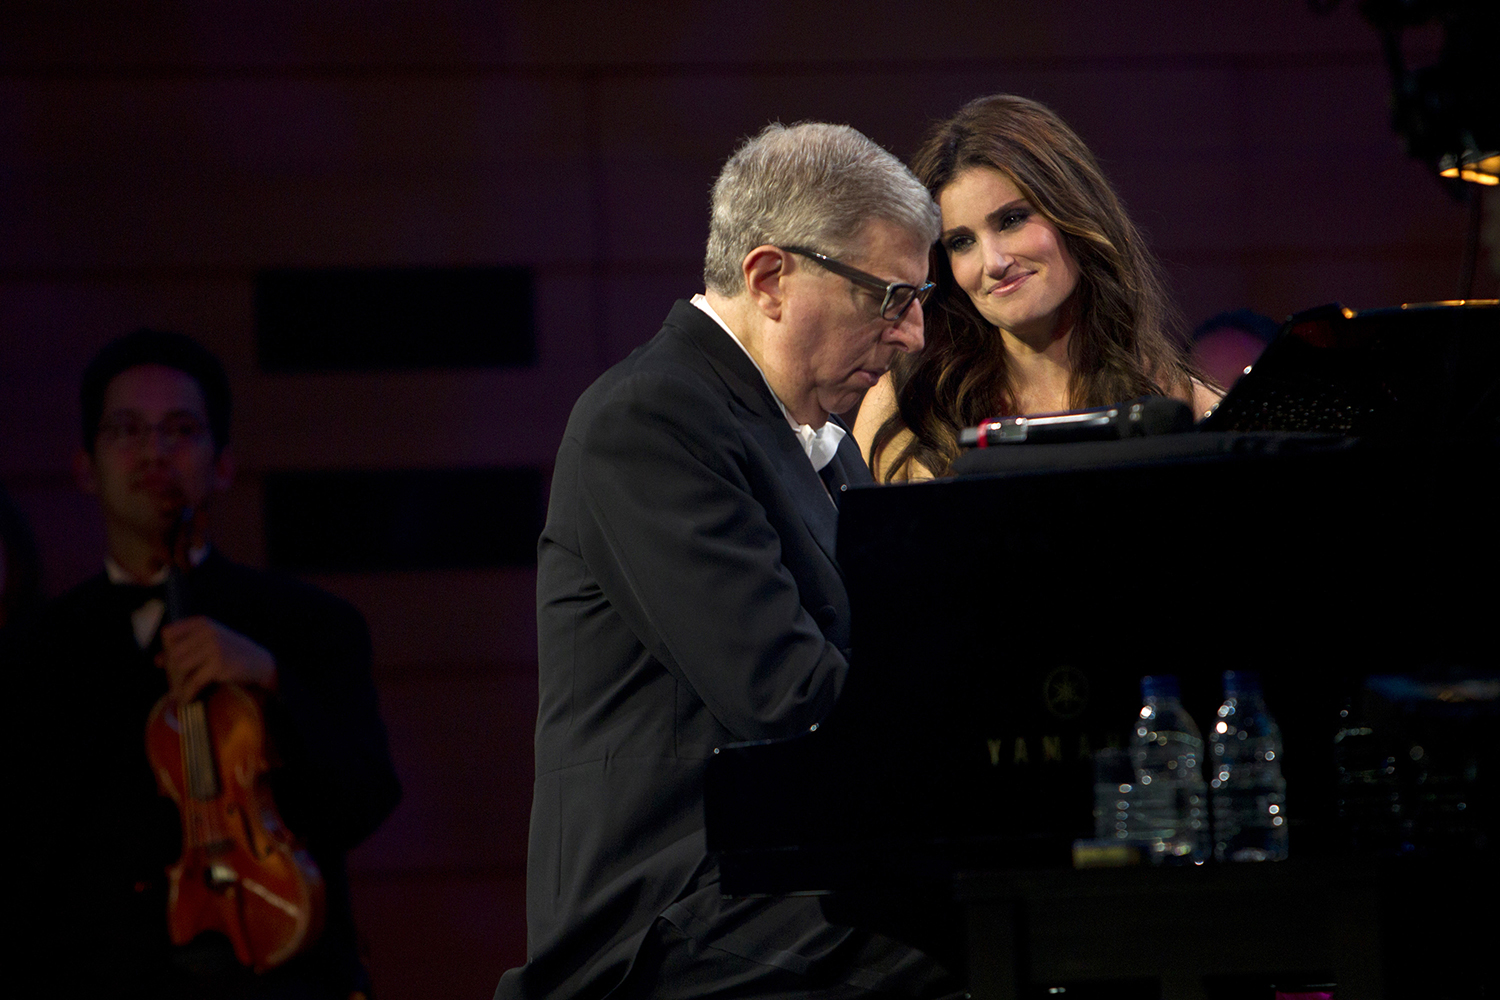 Photo of Idina Menzel and Marvin Hamlisch at a piano